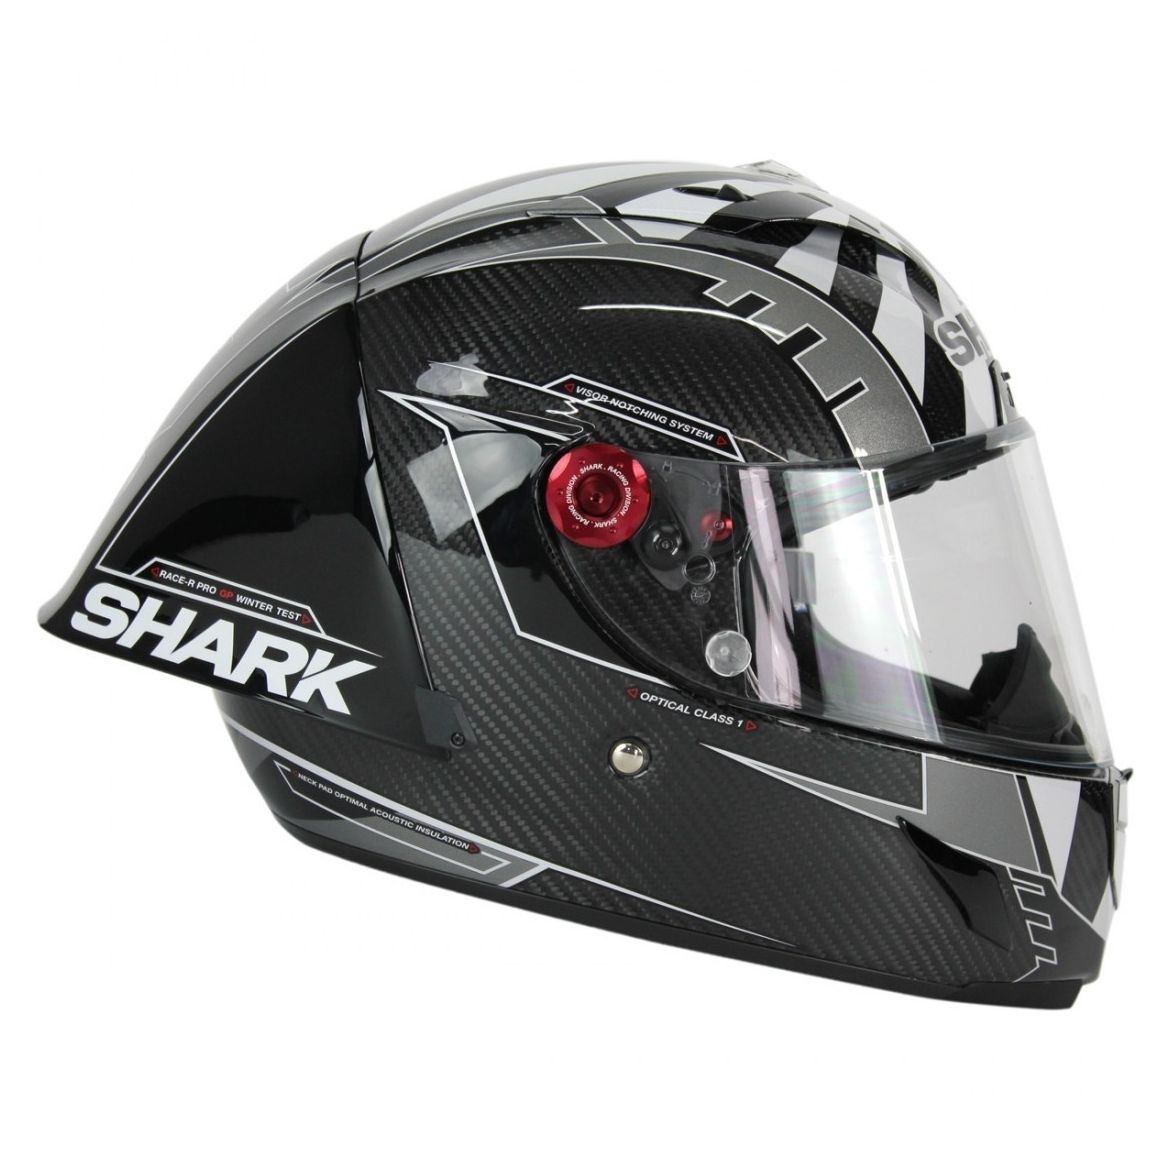 casco shark race r pro gp replica zarco winter test cascos integrales. Black Bedroom Furniture Sets. Home Design Ideas